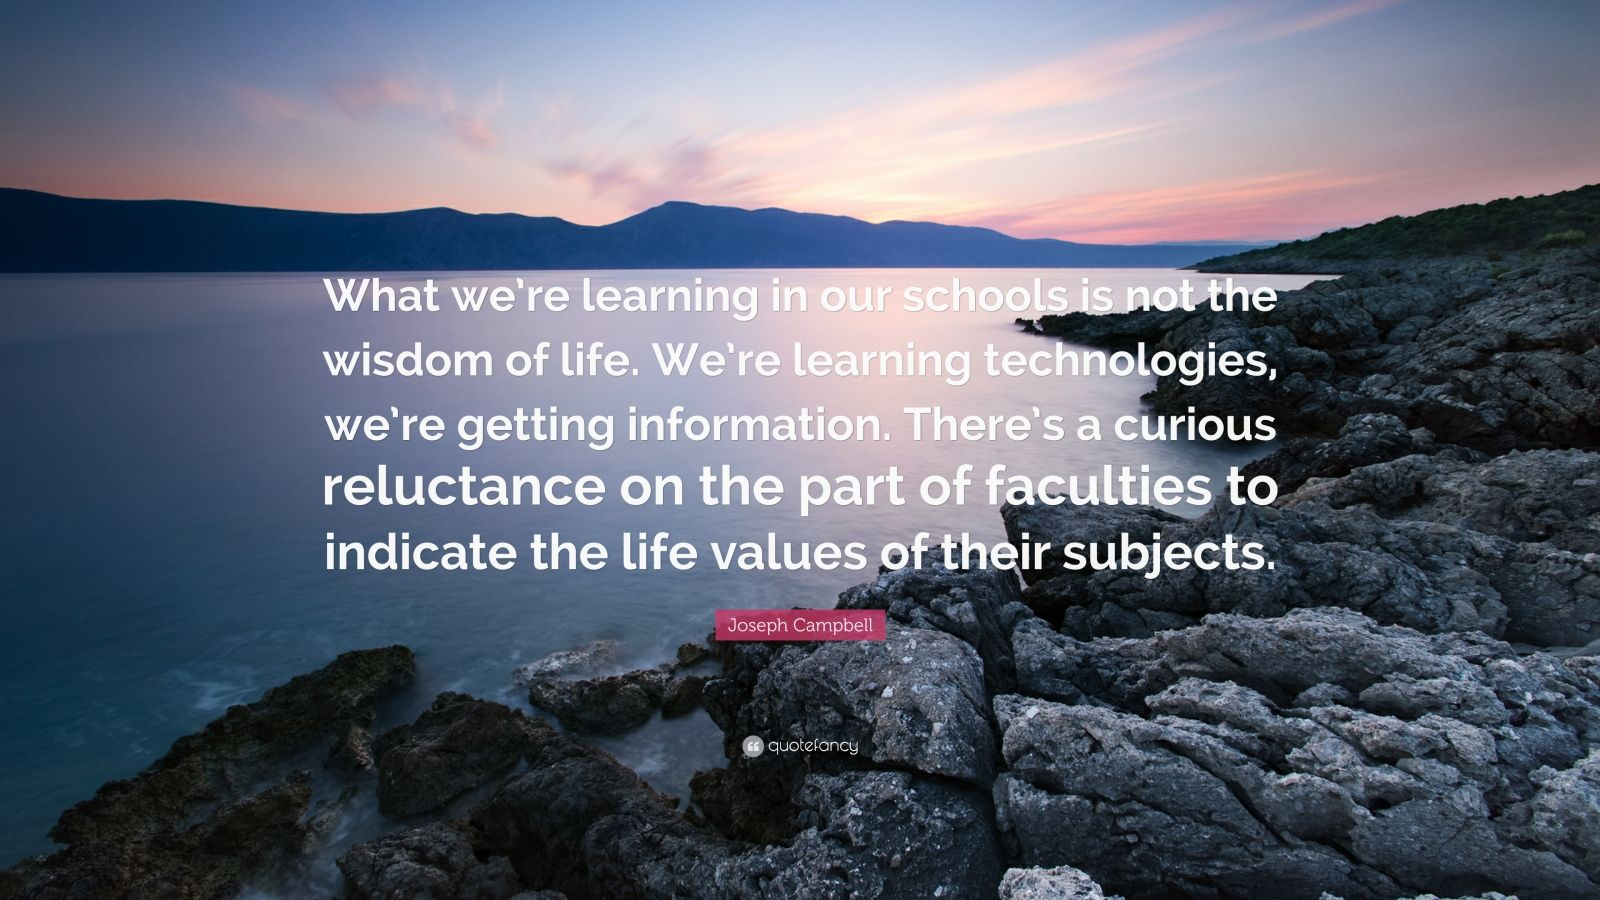 """Joseph Campbell Quote: """"What we're learning in our schools is not the wisdom of life. We're learning technologies, we're getting information. There's a curious reluctance on the part of faculties to indicate the life values of their subjects."""""""